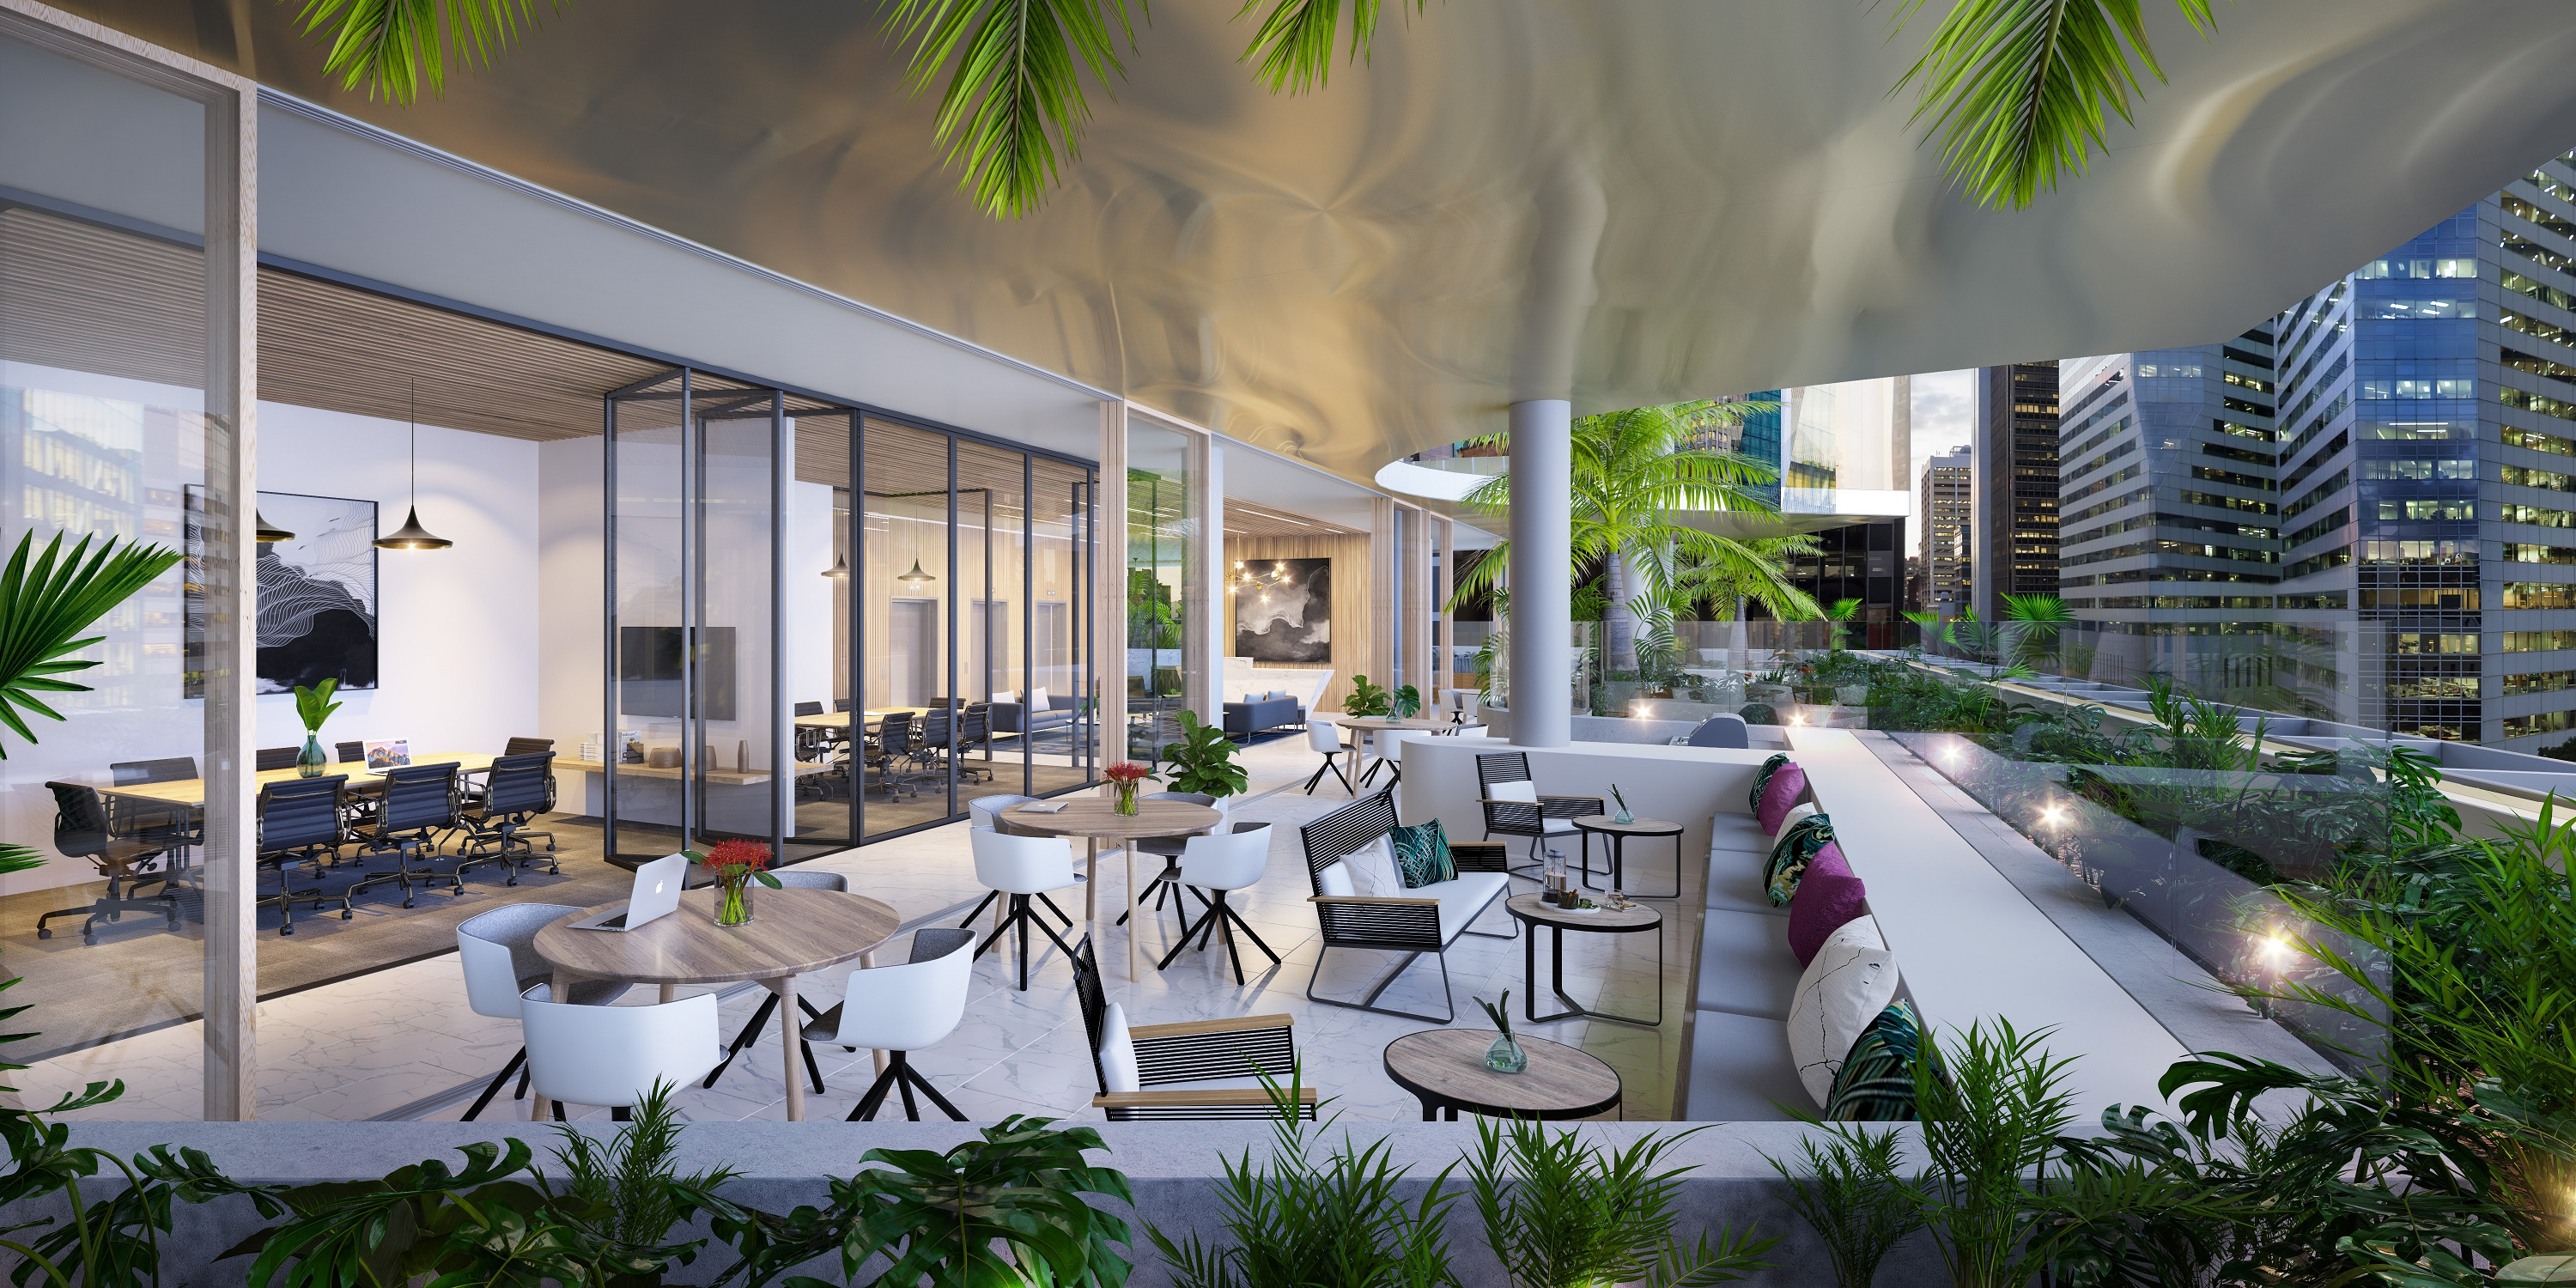 BVN's design connects the indoors to the outdoors through a series of gardens cascading from the Sky Terrace